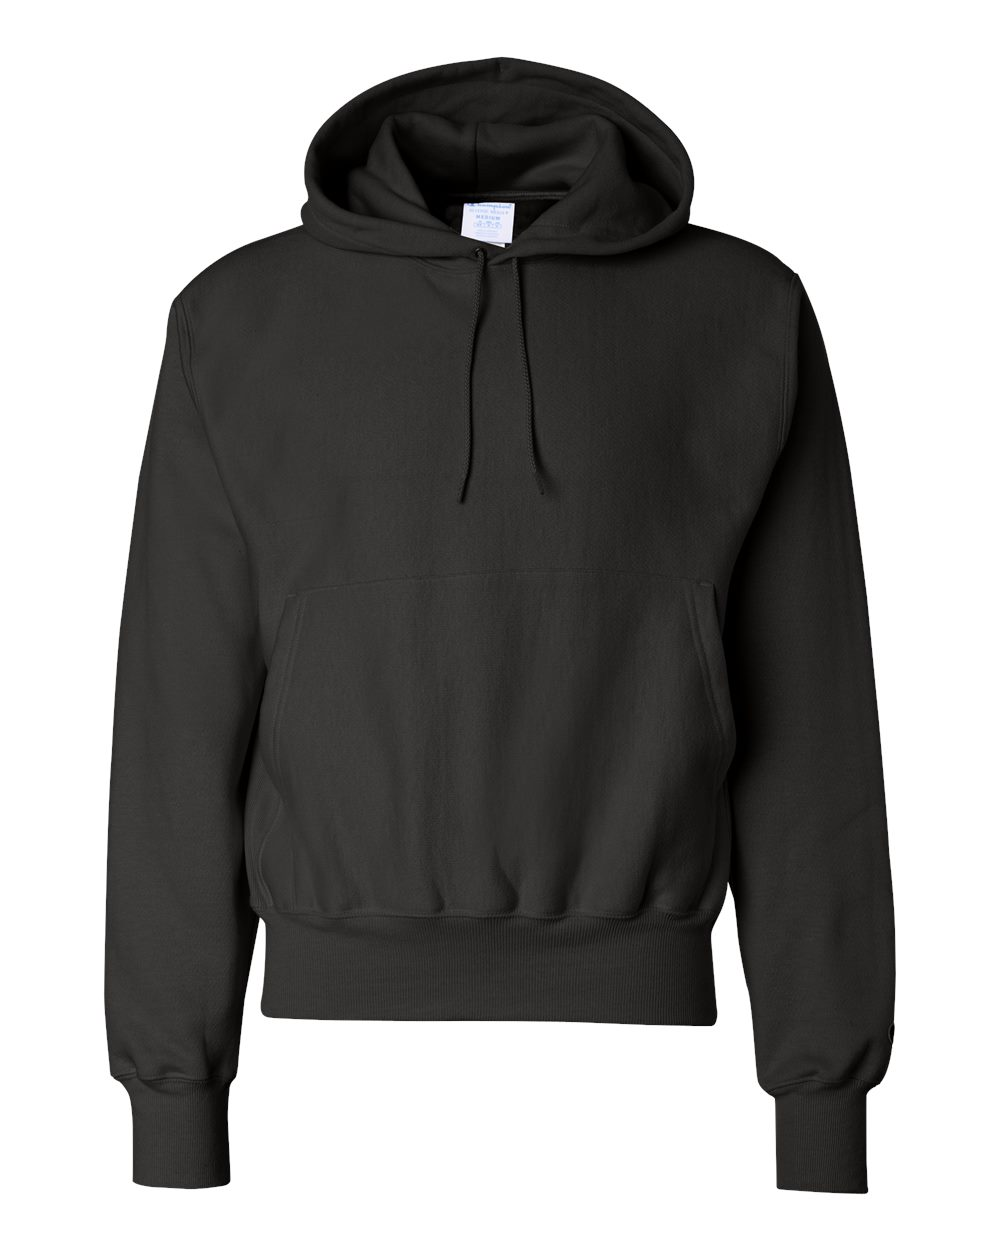 Champion-Mens-Reverse-Weave-Hooded-Pullover-Sweatshirt-S101-up-to-3XL thumbnail 9